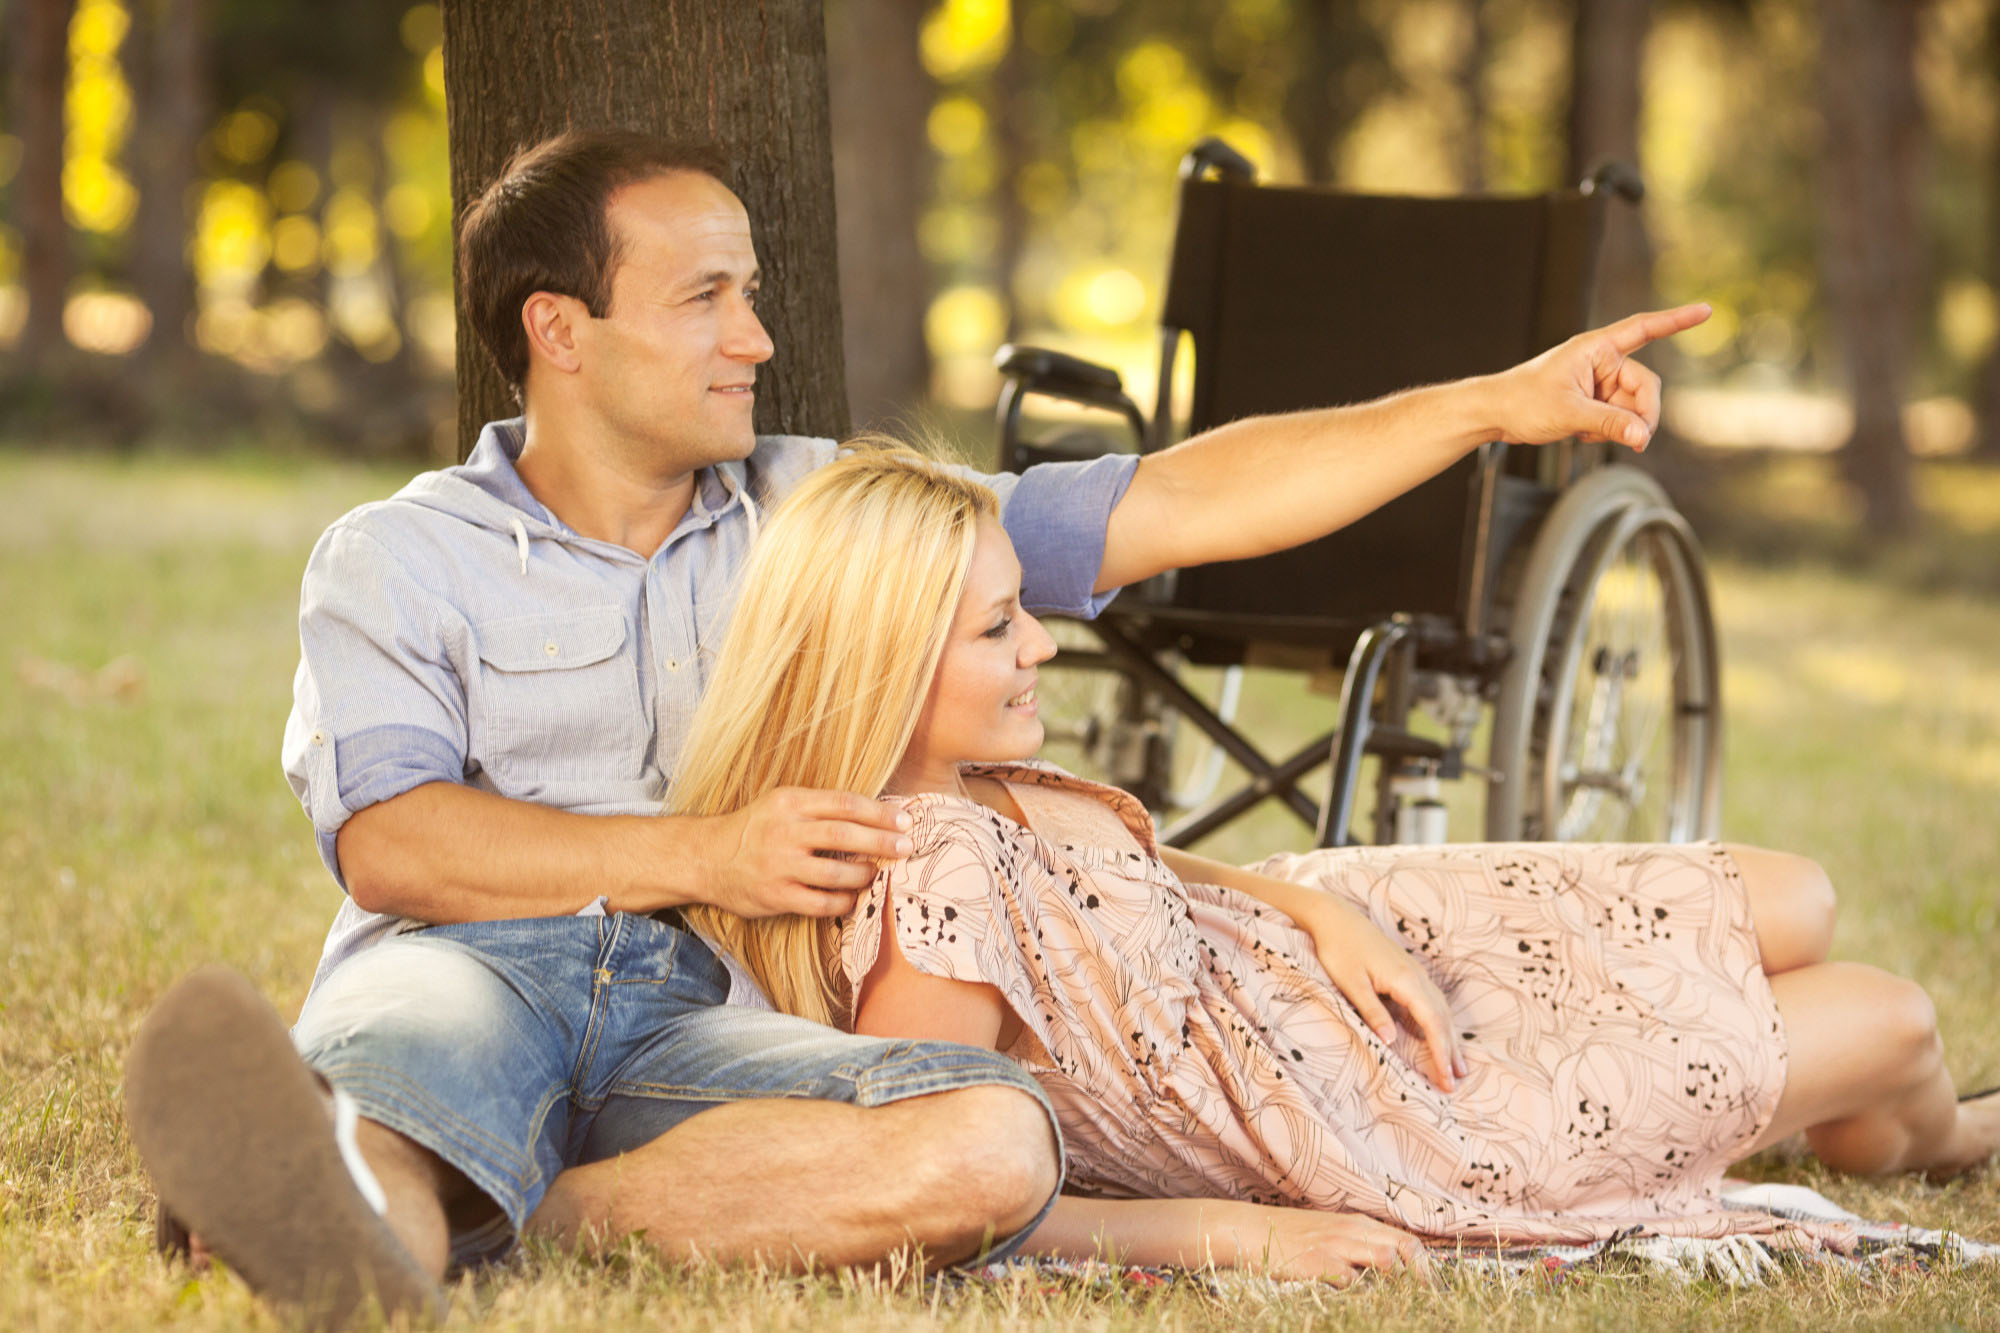 accessible date ideas